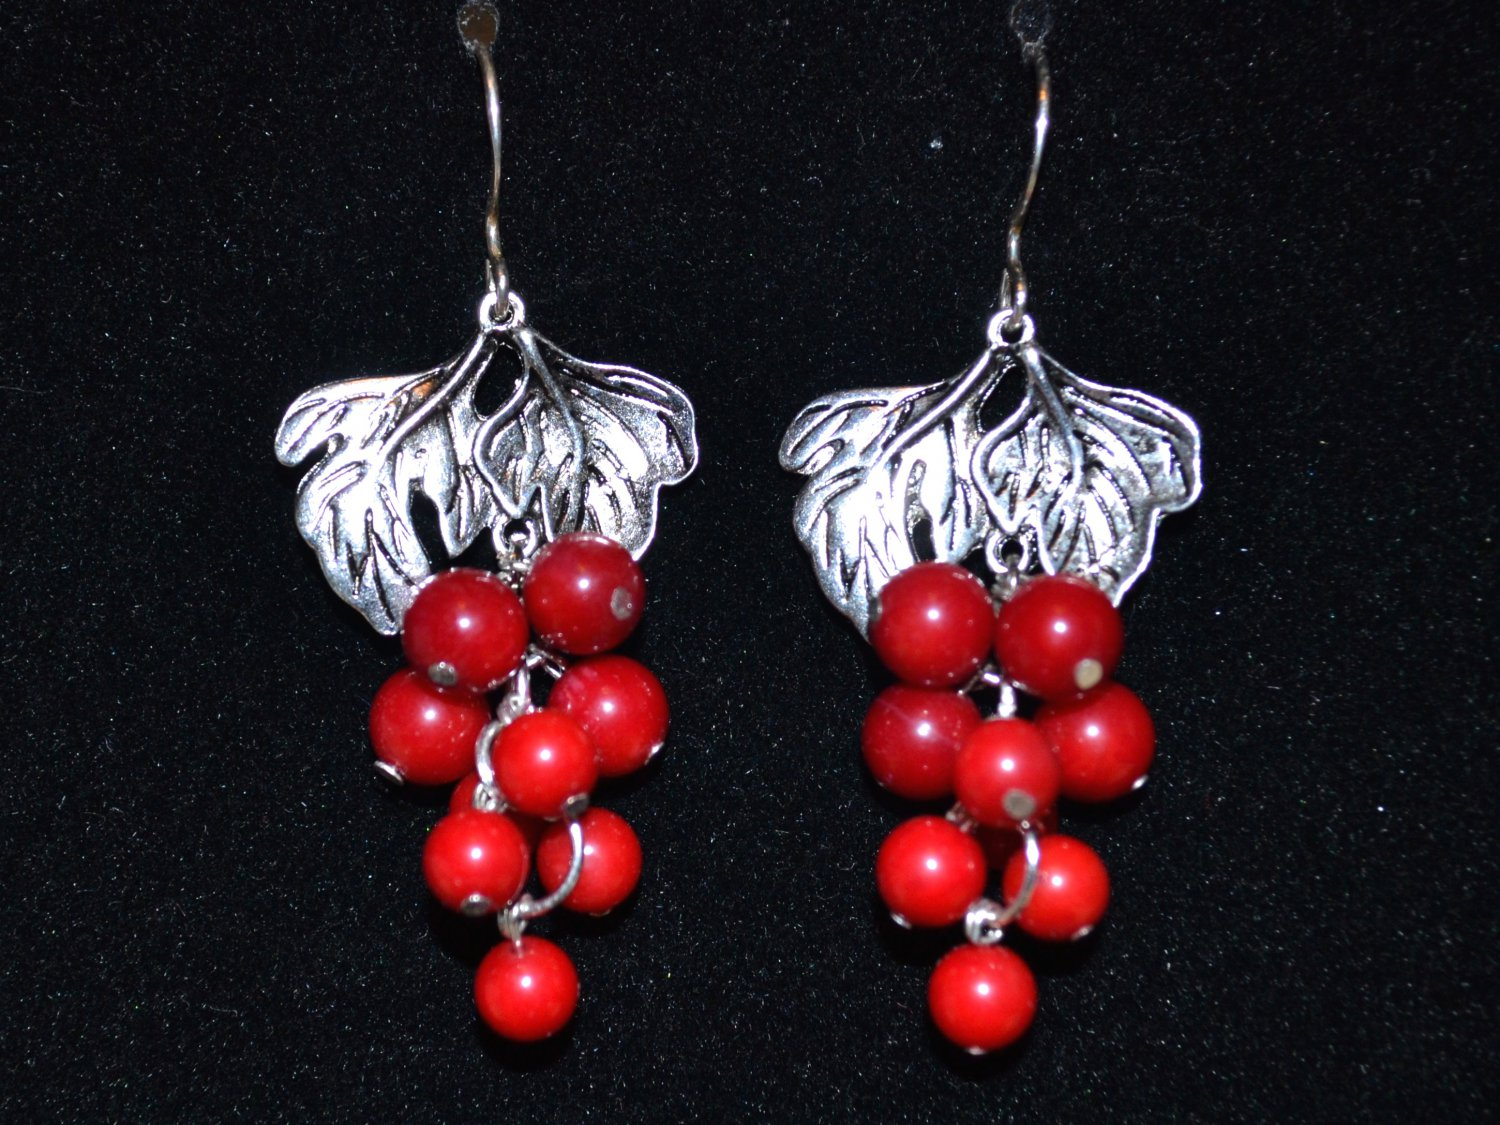 Earrings with coral and silver earwires